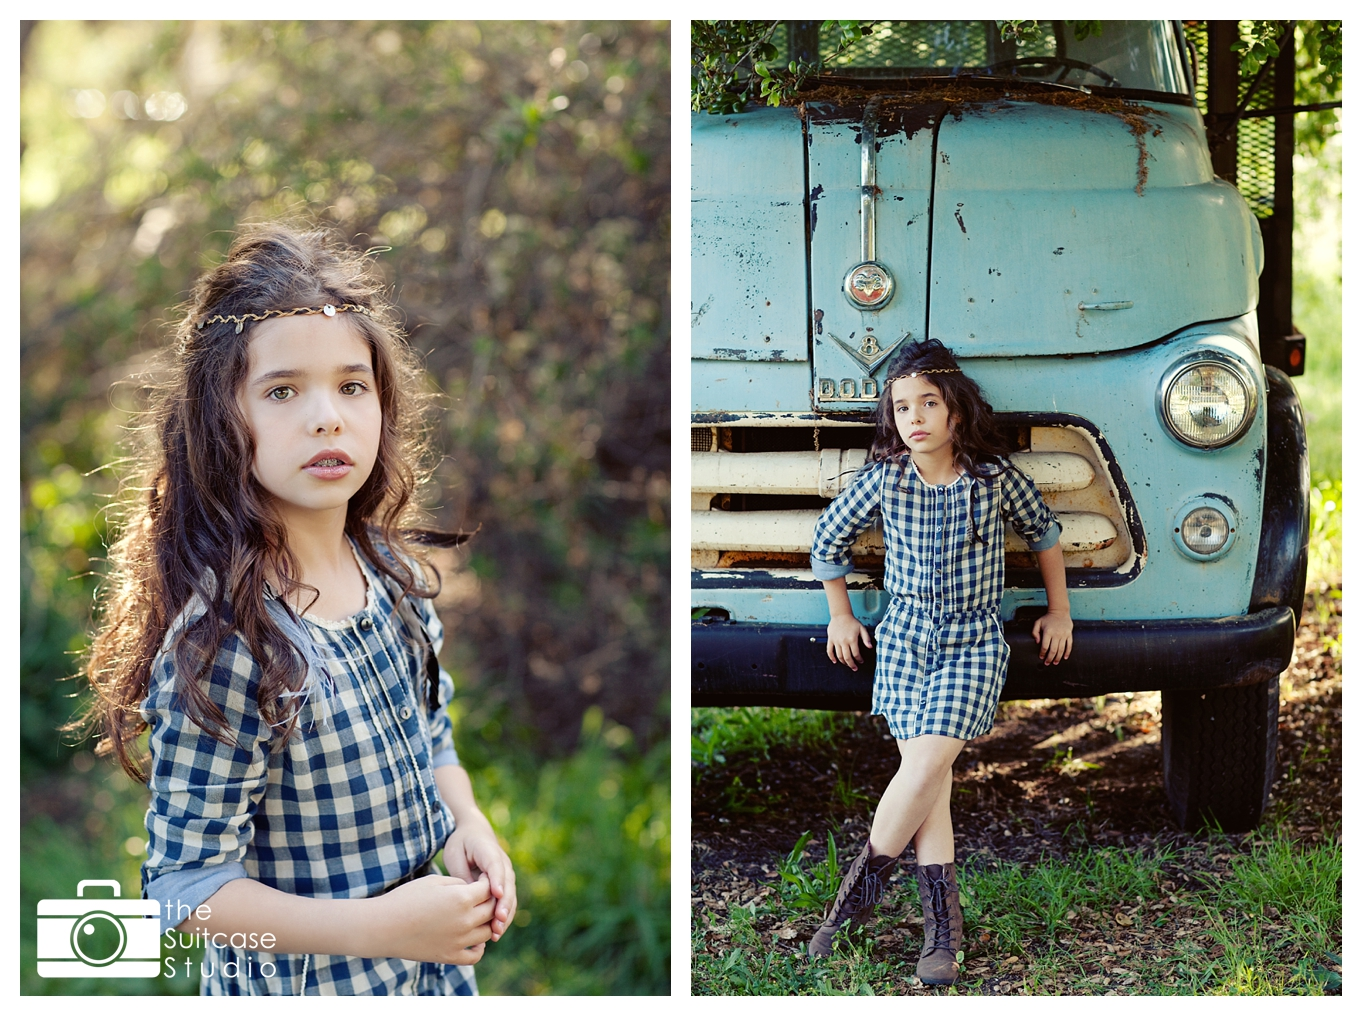 TheSuitcaseStudio-OrangeCountyChildrenPhotographer-5.jpg